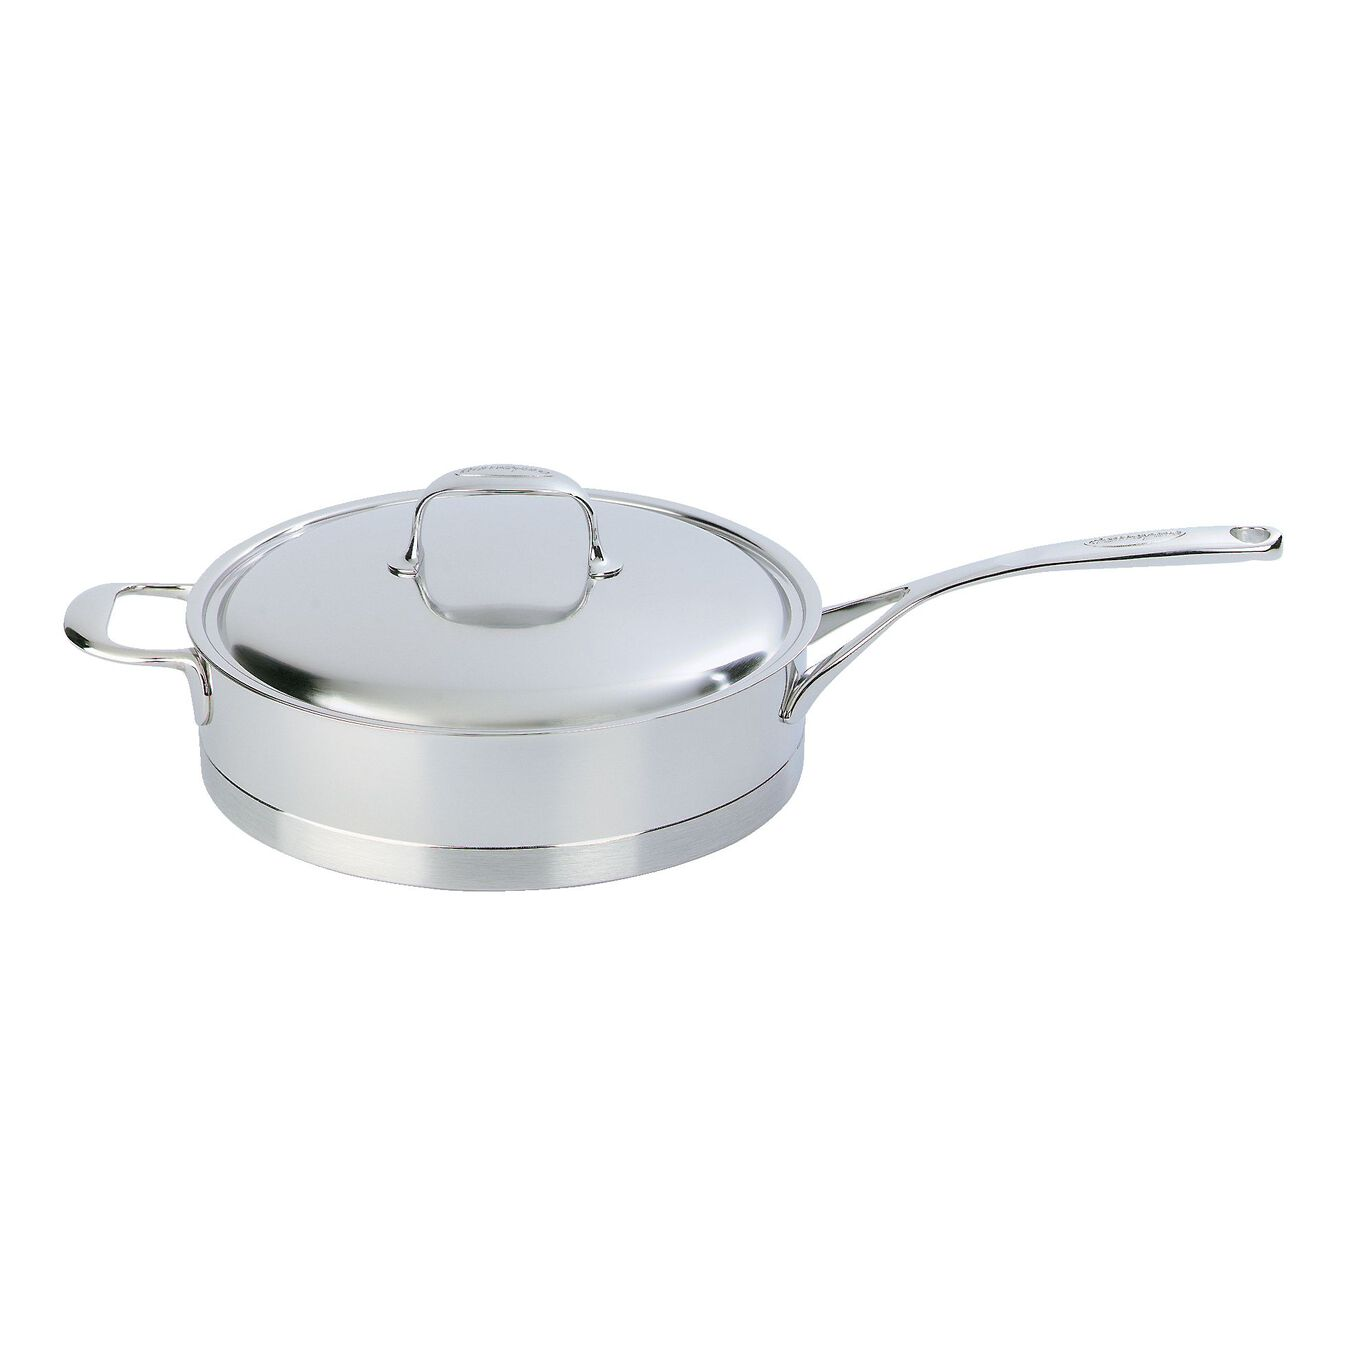 28 cm 18/10 Stainless Steel Saute pan with lid,,large 1